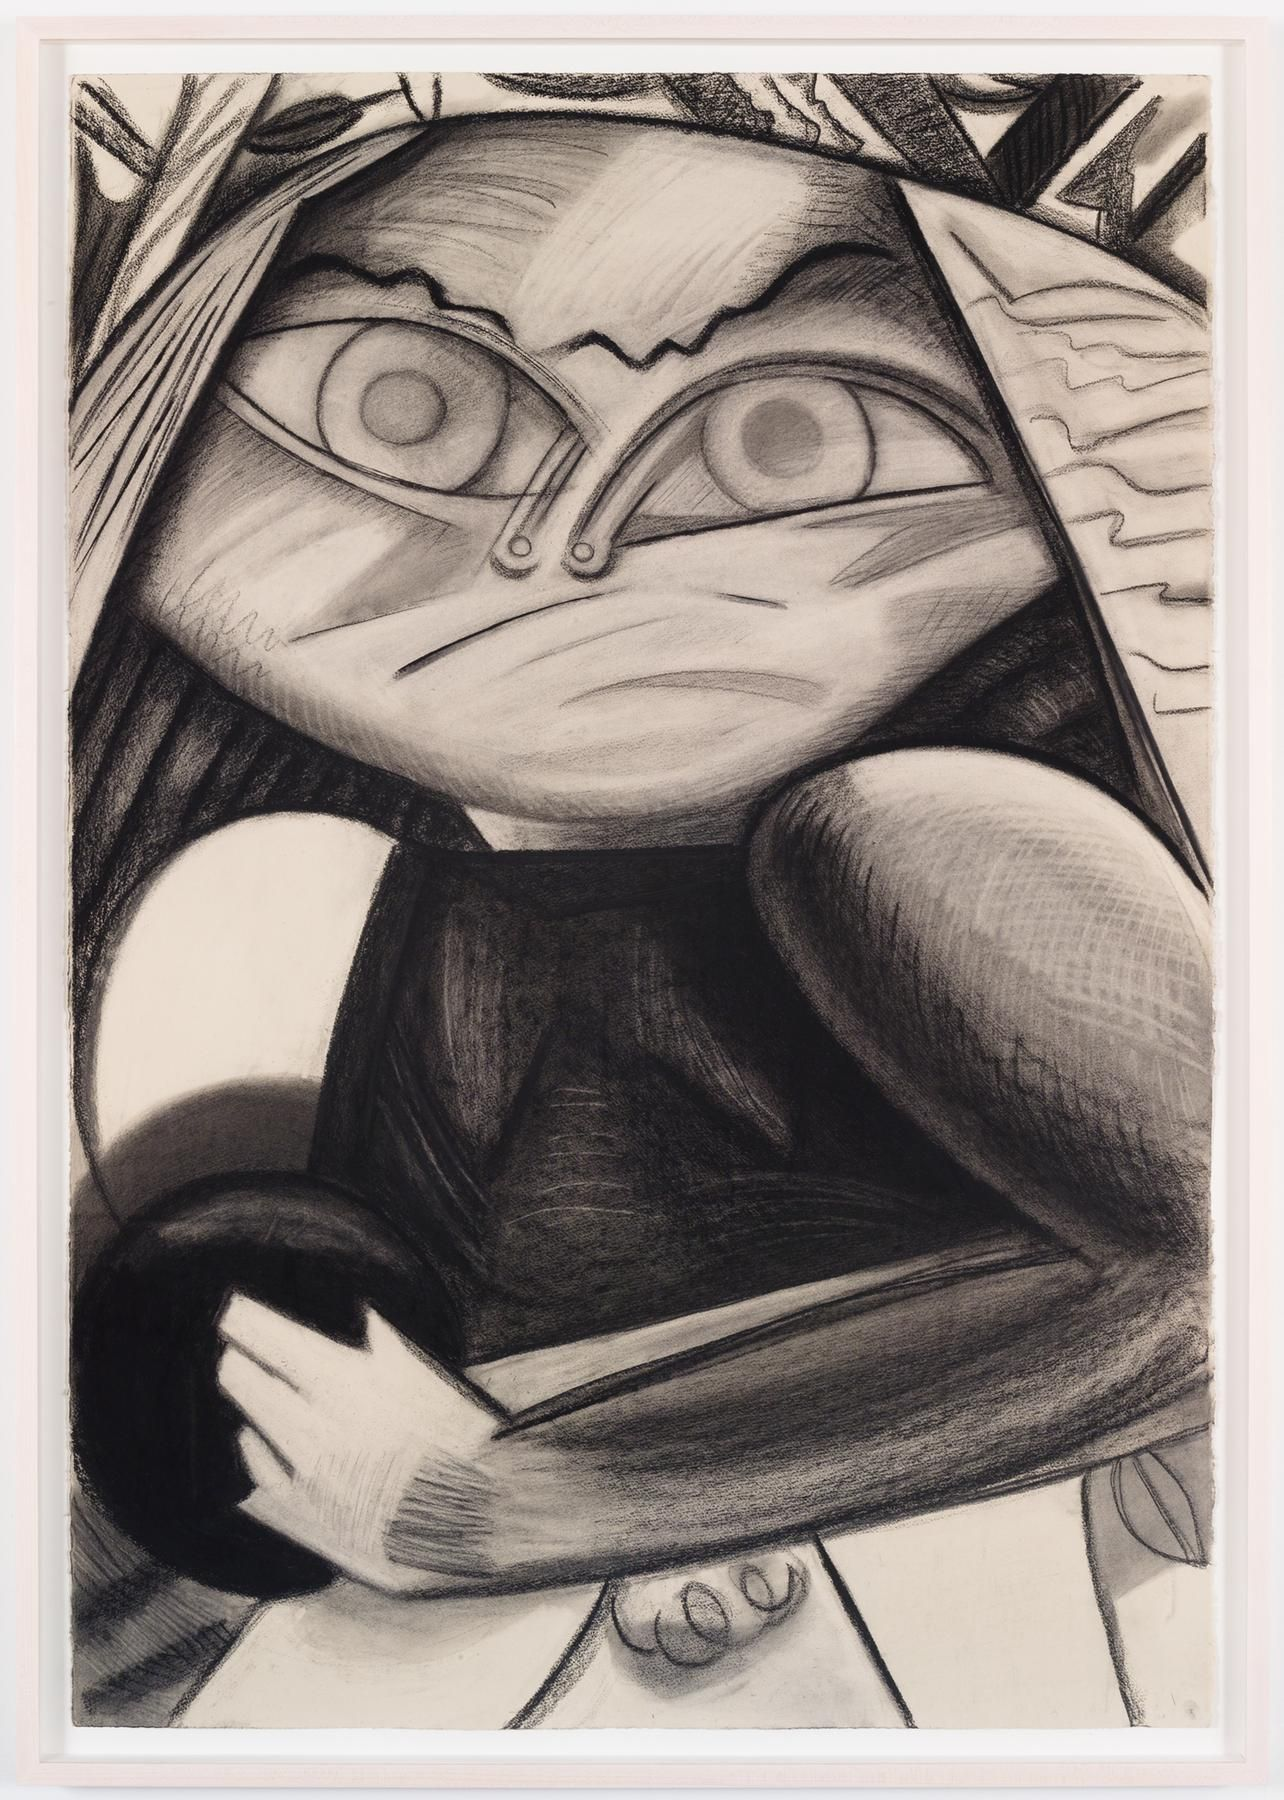 Bowler 2015 Charcoal on paper